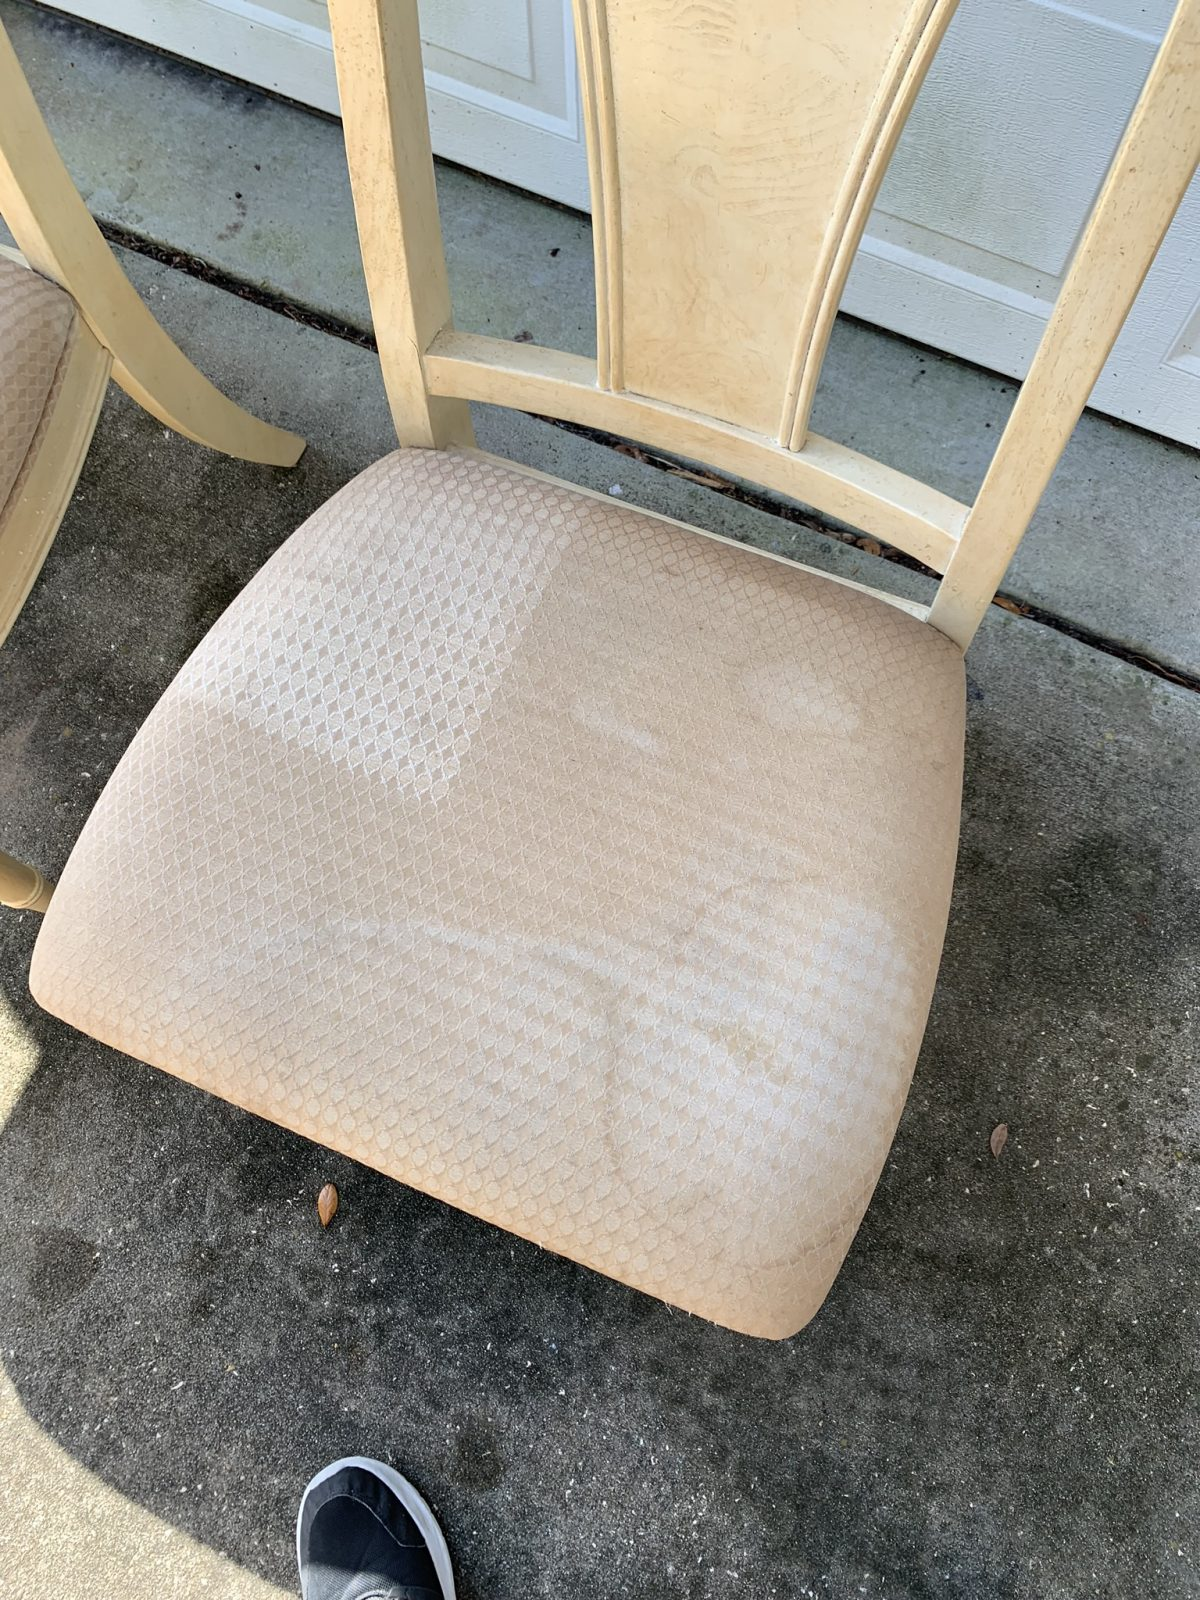 Professional Upholstery Cleaning Odessa Florida by Howards Cleaning Service